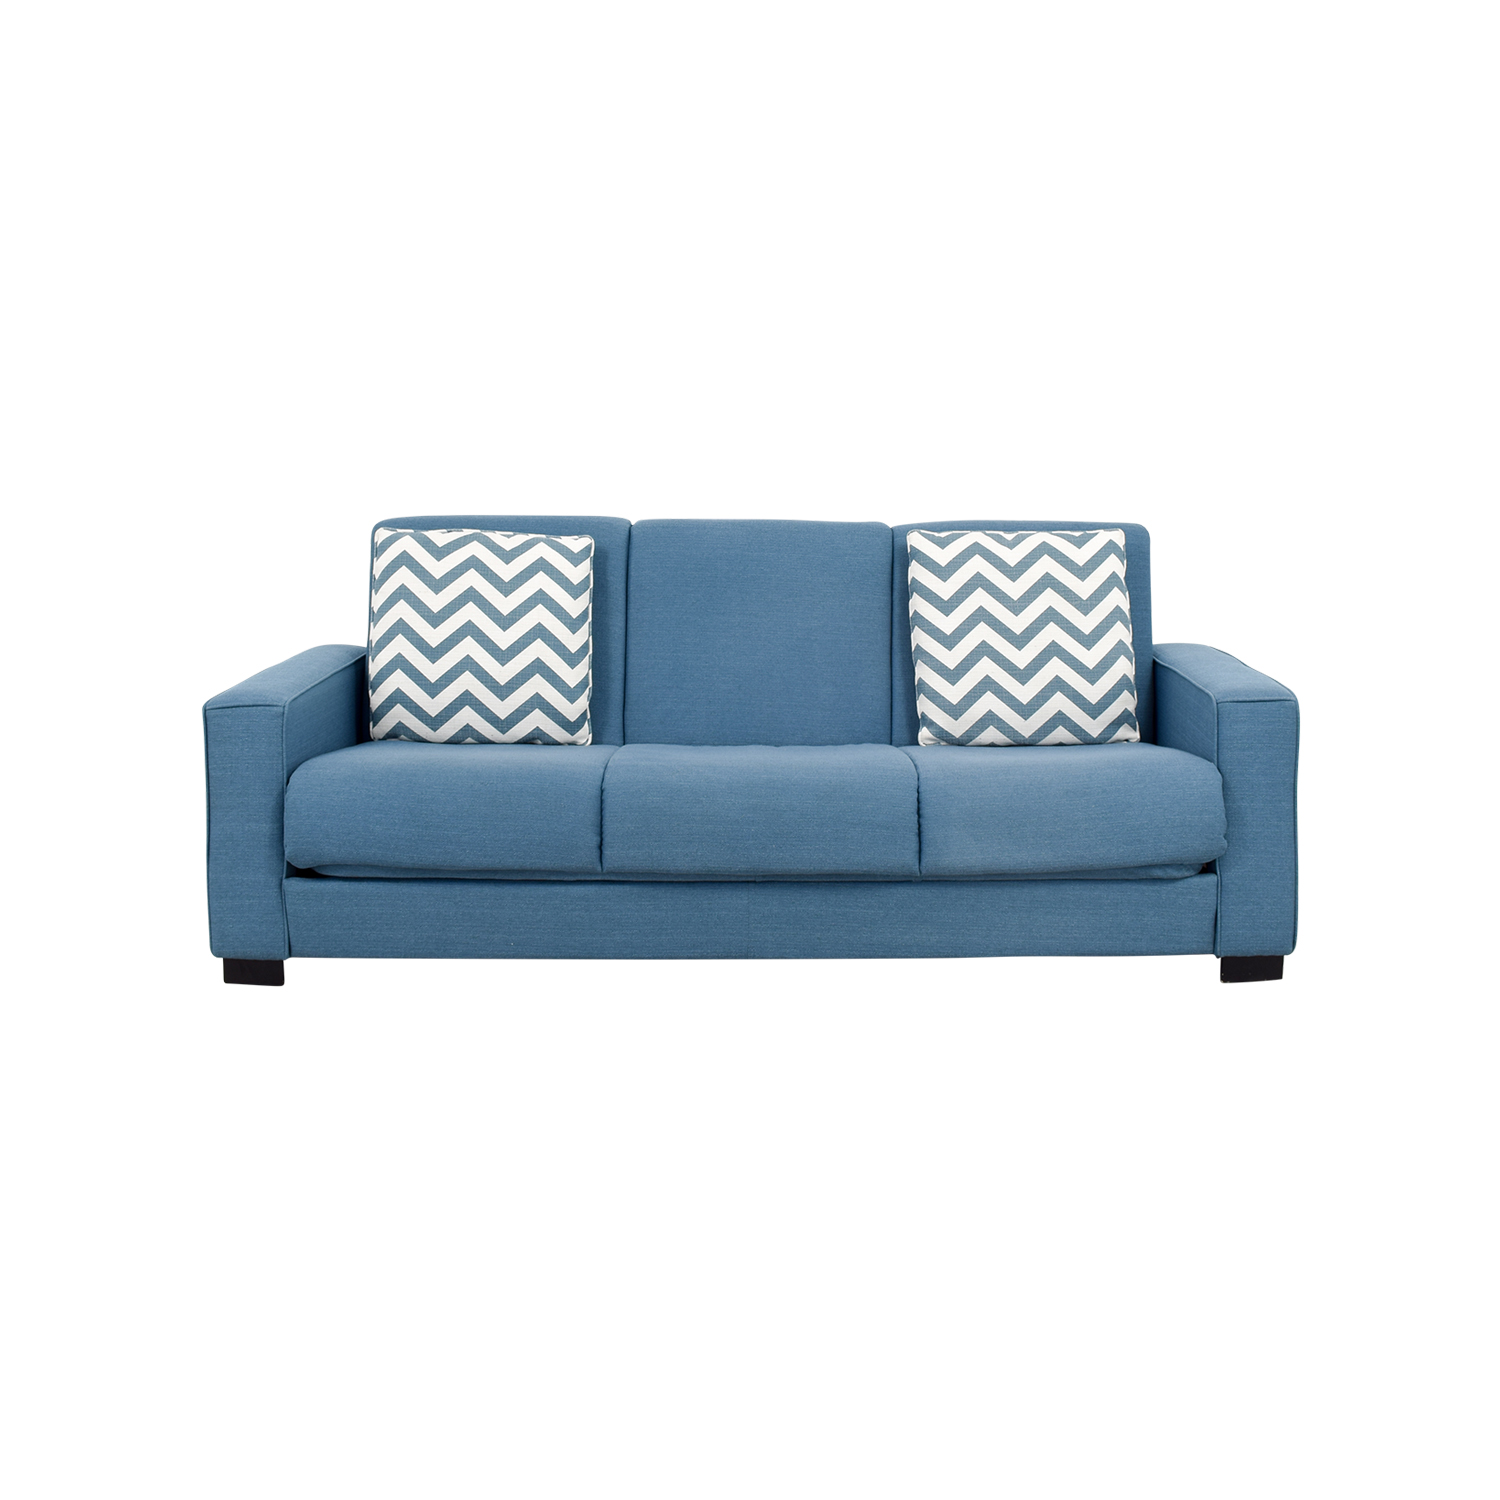 Bed Bath and Beyond Bed Bath & Beyond Blue Convert-A-Couch nj